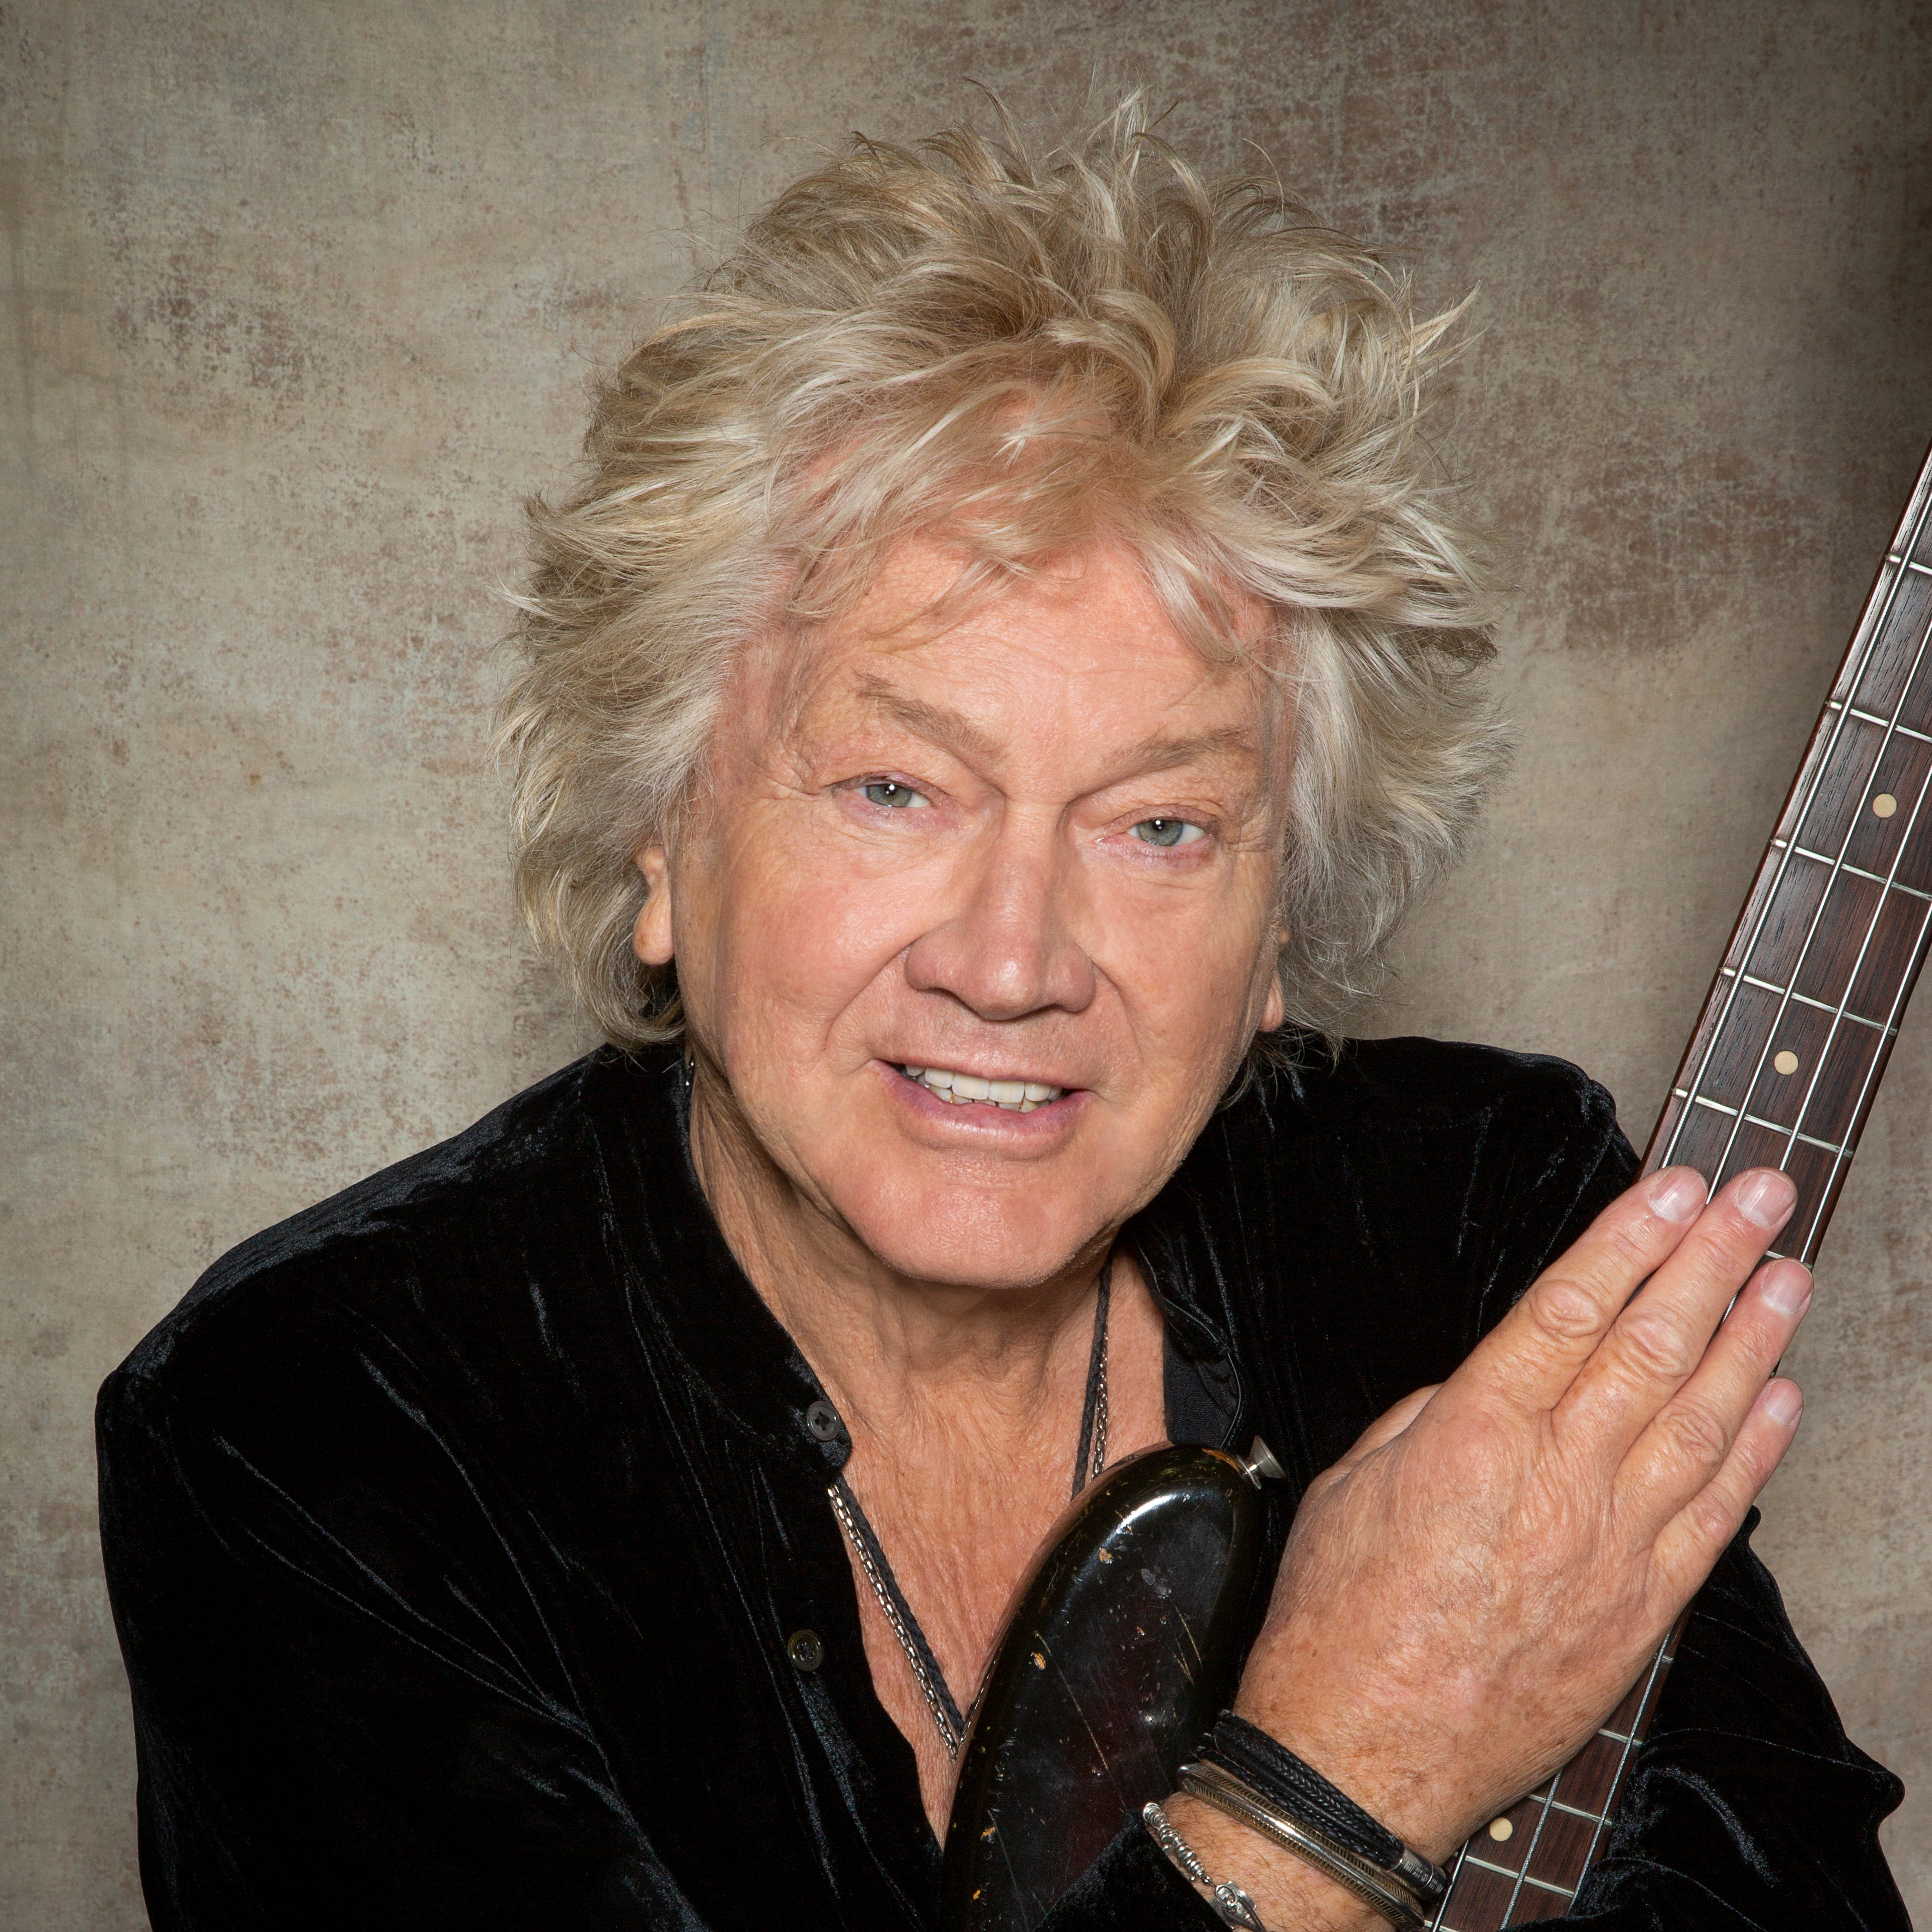 John Lodge Of The Moody Blues On Naples Condo Fort Myers Show Album